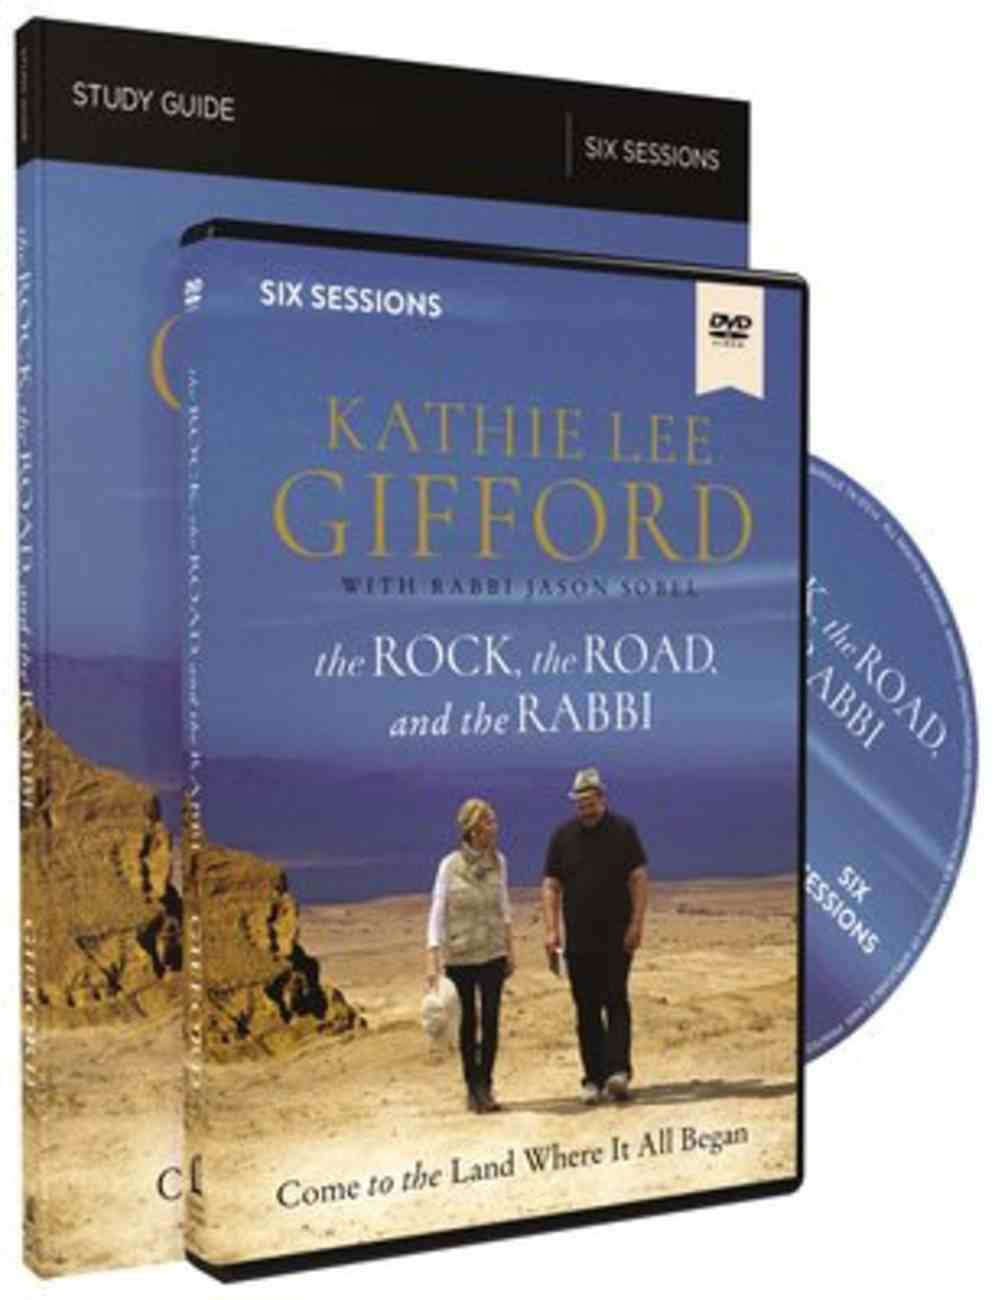 Rock, the Road, and the Rabbi, the: My Journey Into the Heart of the Christian Faith and the Land Where It All Began (Study Guide With Dvd) Paperback